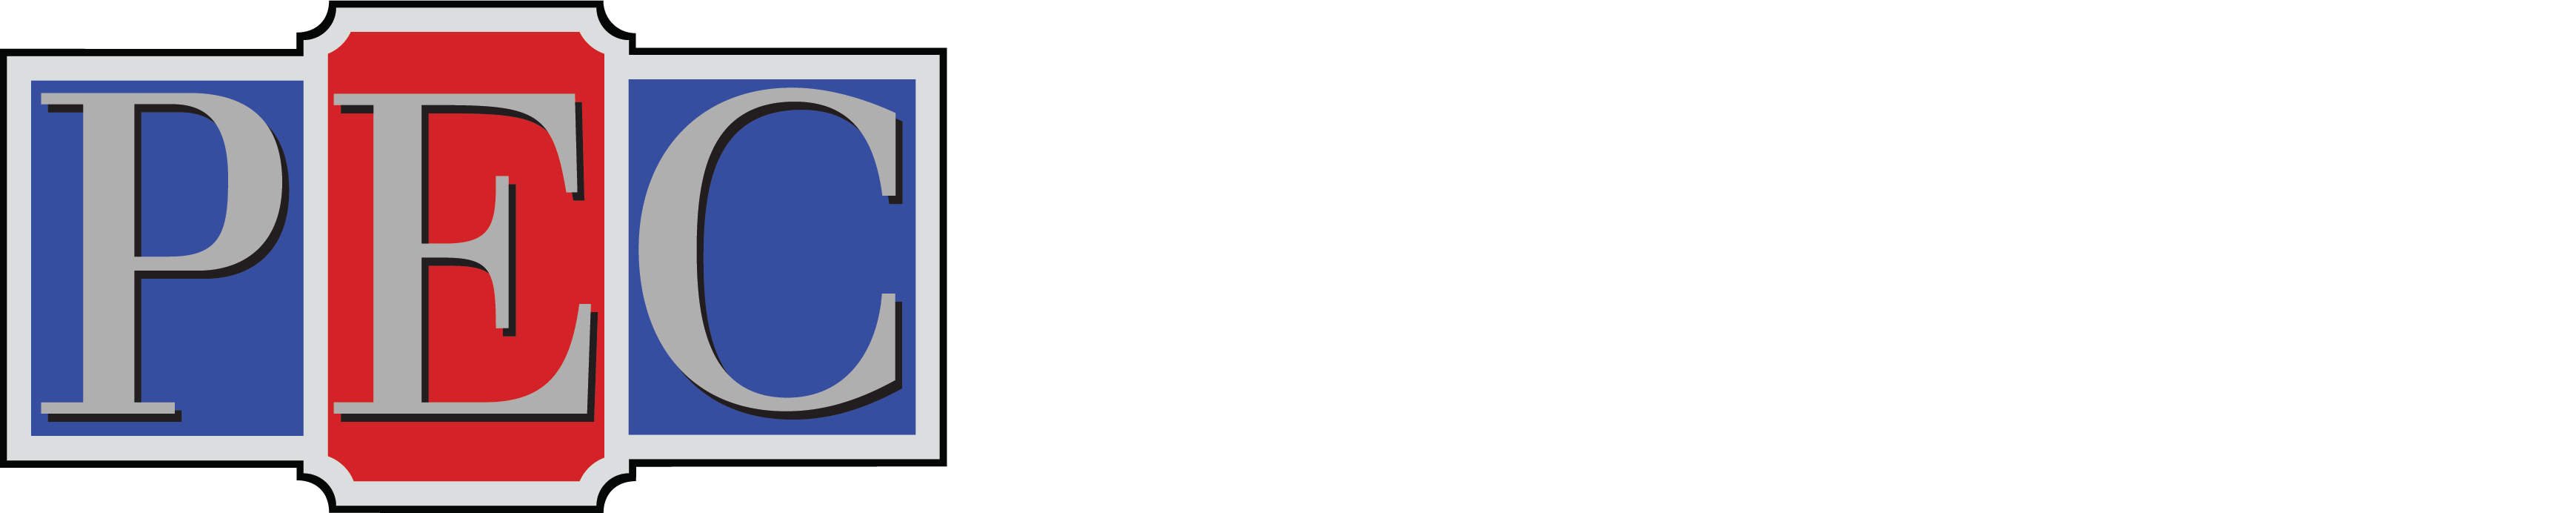 Pella Engraving & Sign Company logo